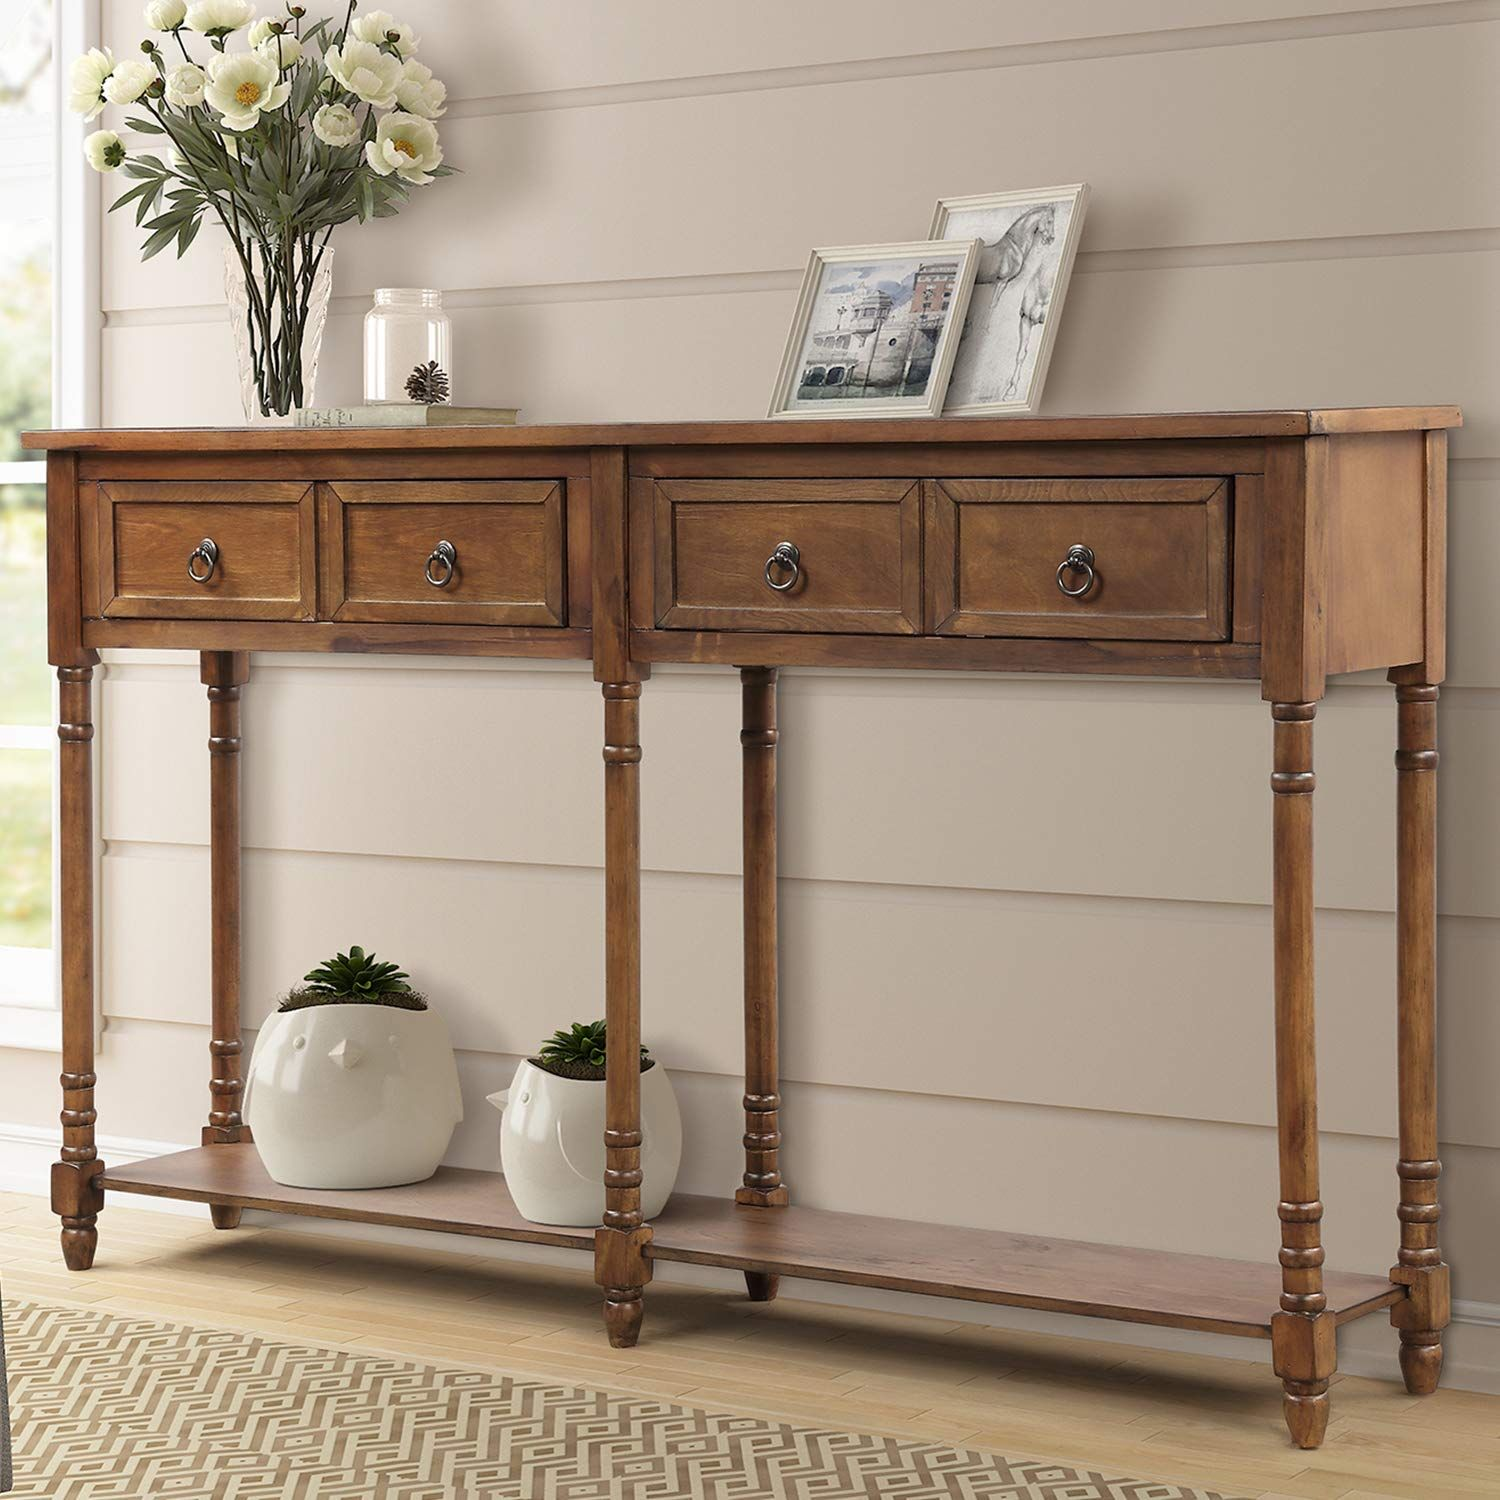 Amazon Com P Purlove Console Table Sofa Table With Storage For Entryway With Drawers And Shelf R In 2020 Sideboard Console Table Console Table Sofa Table With Drawers